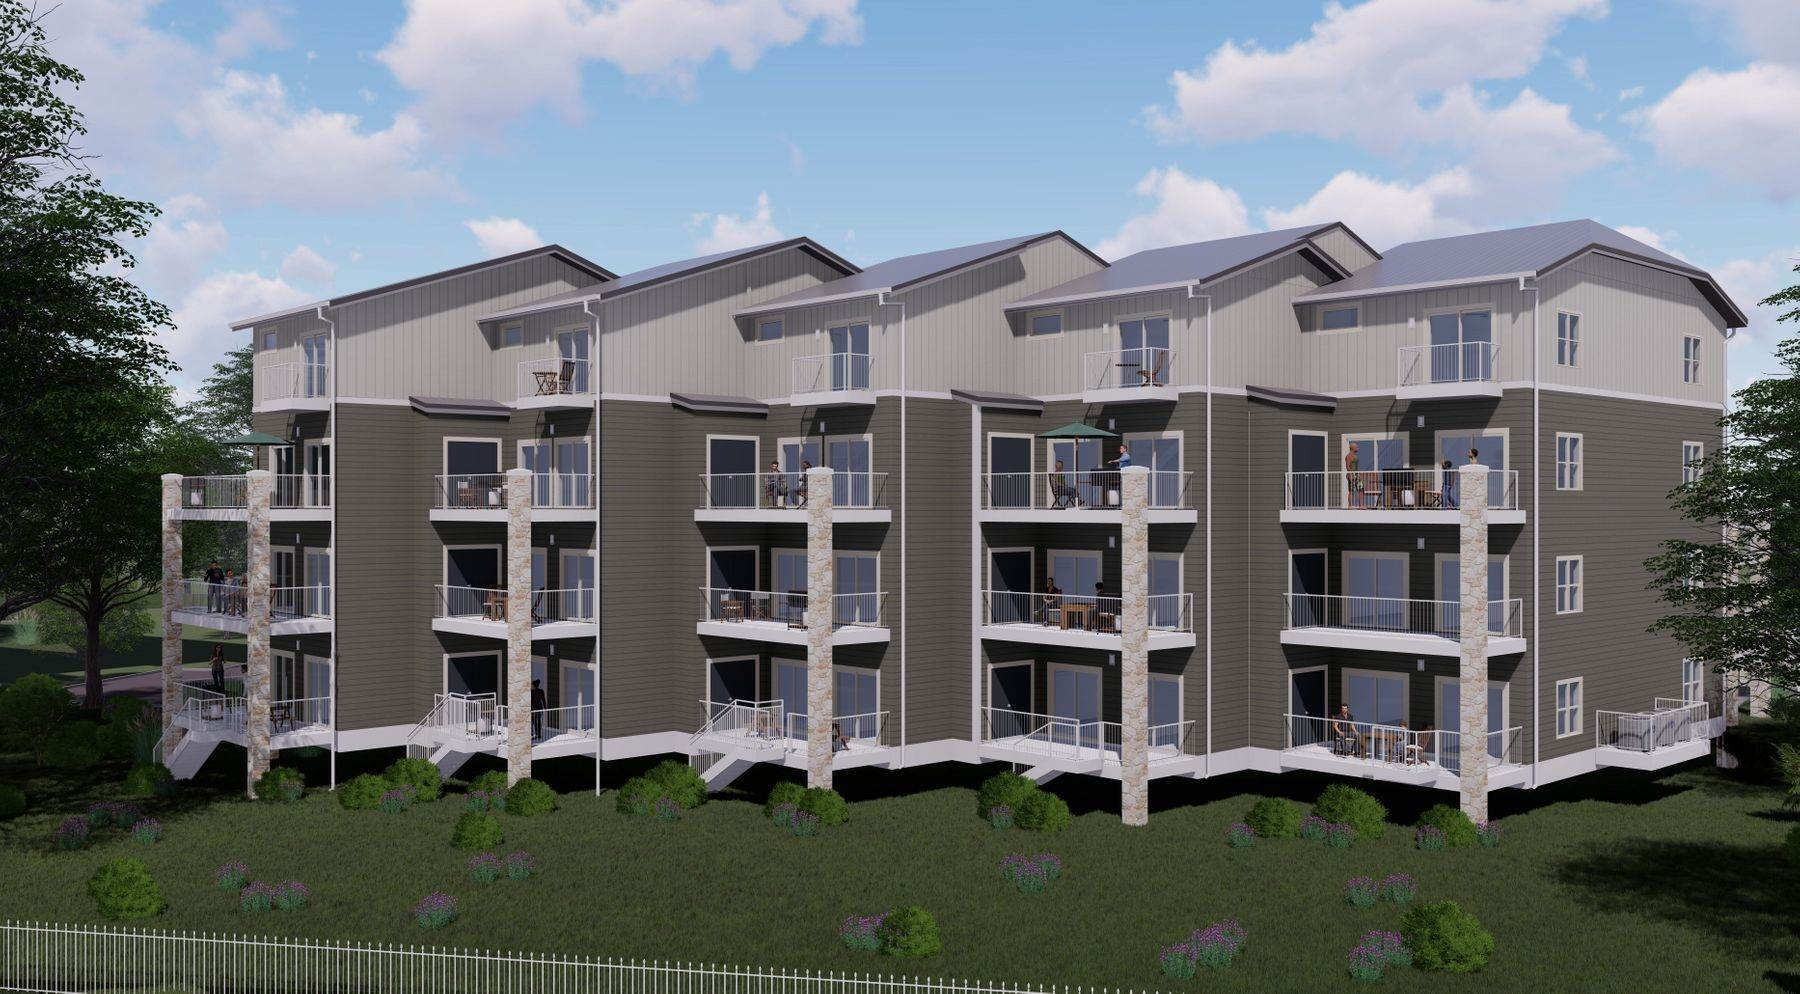 Condominiums for Sale at Premier River-Front Condos on the Guadalupe Rapids 1228 Ervendberg Avenue, Unit 301 New Braunfels, Texas 78130 United States